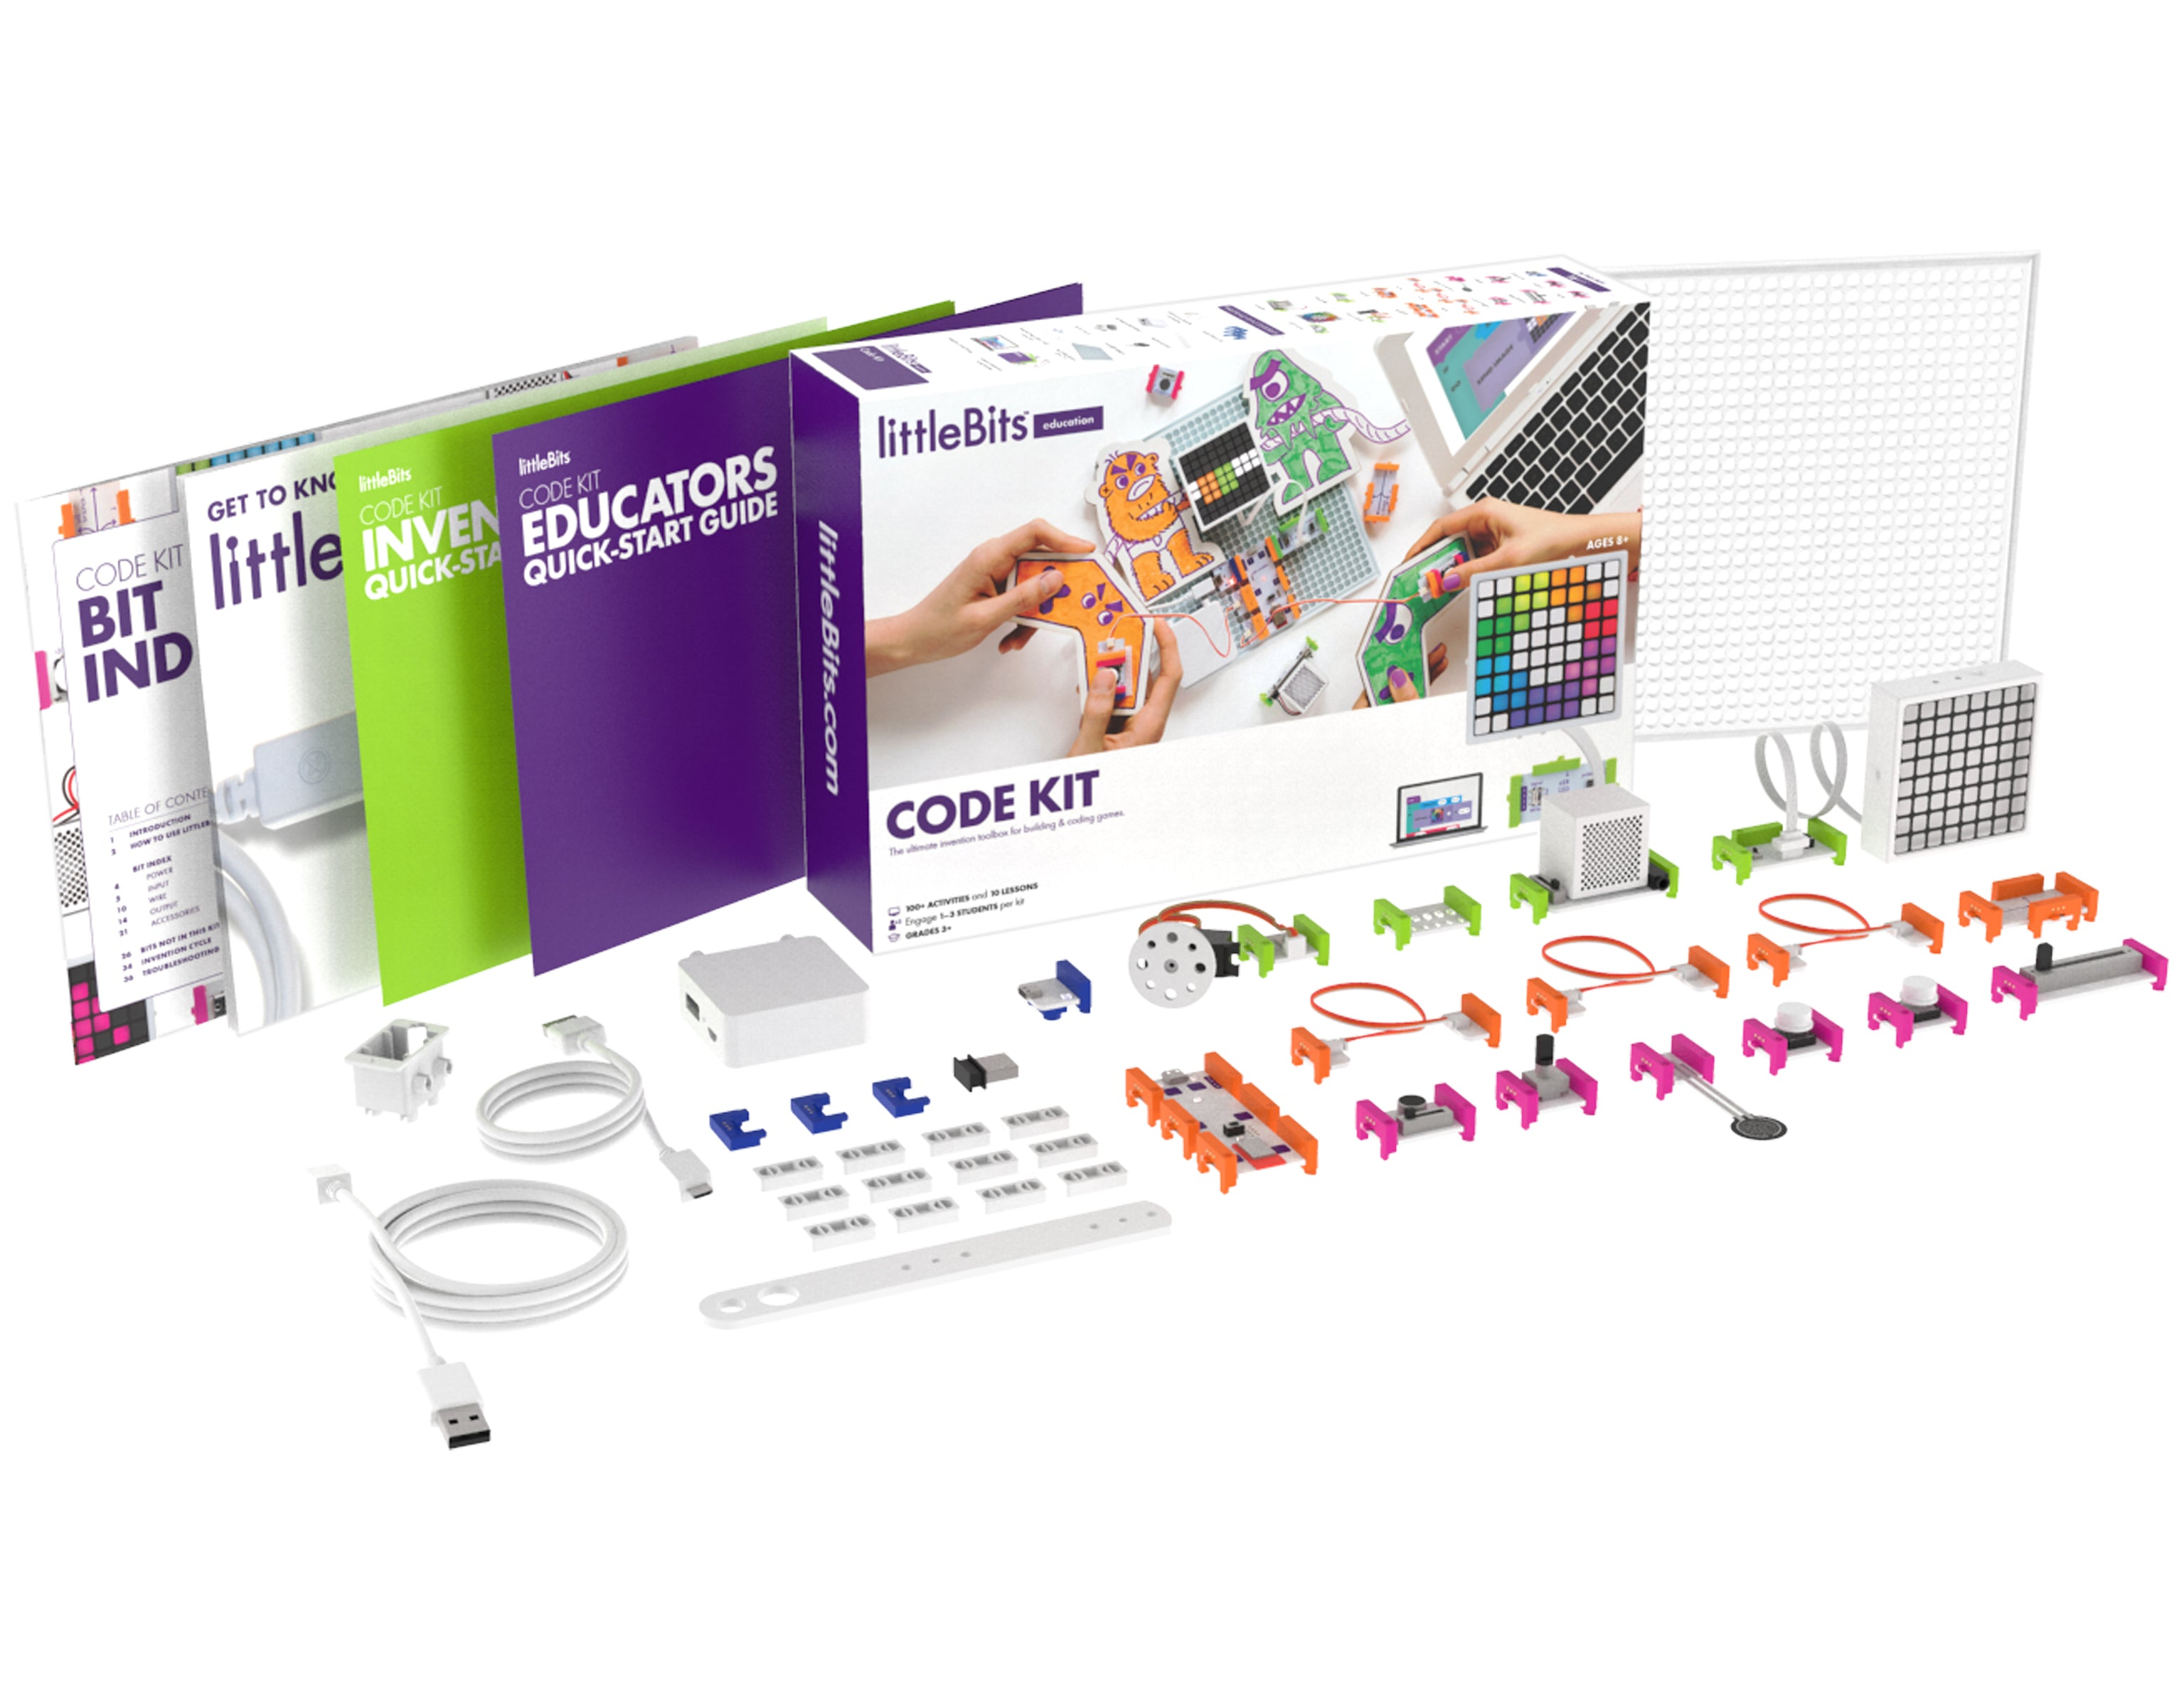 Littlebits Code Kit Stem Supplies Circuit Scribe And Chibitronics Review